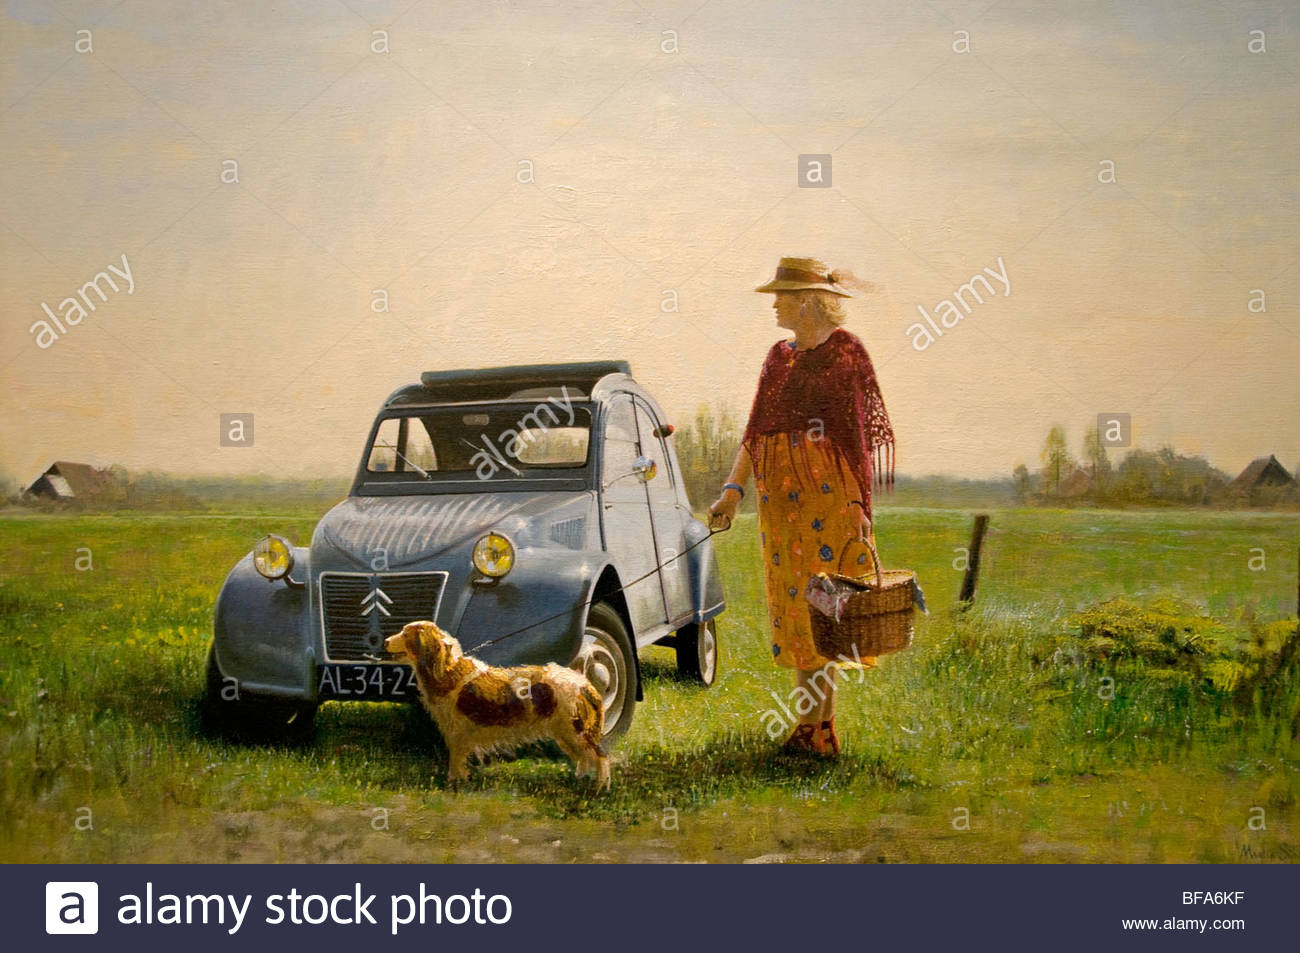 martin sijbesma 2 cv citroen woman dog art gallery amsterdam stock photo  26654979